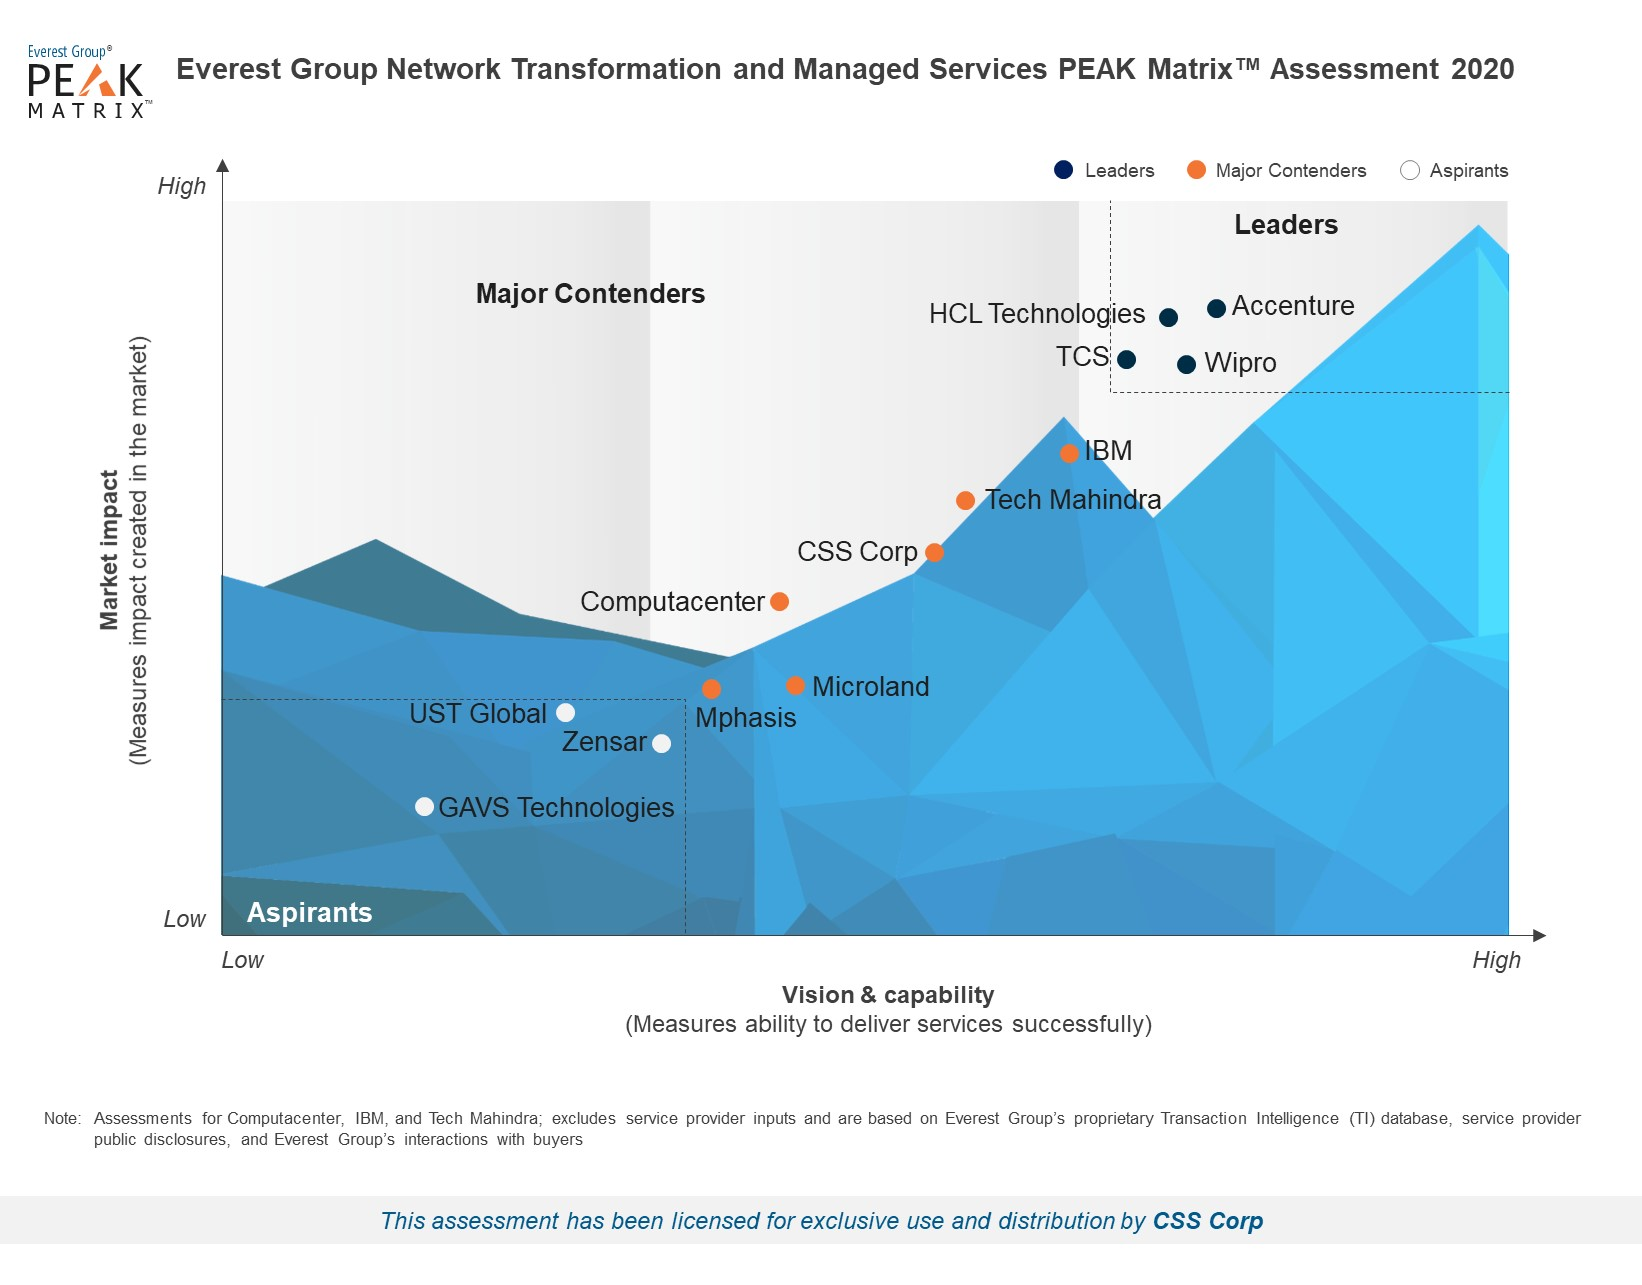 High-Res PEAK 2020 - Network Transformation & Managed Services - For CSS Corp